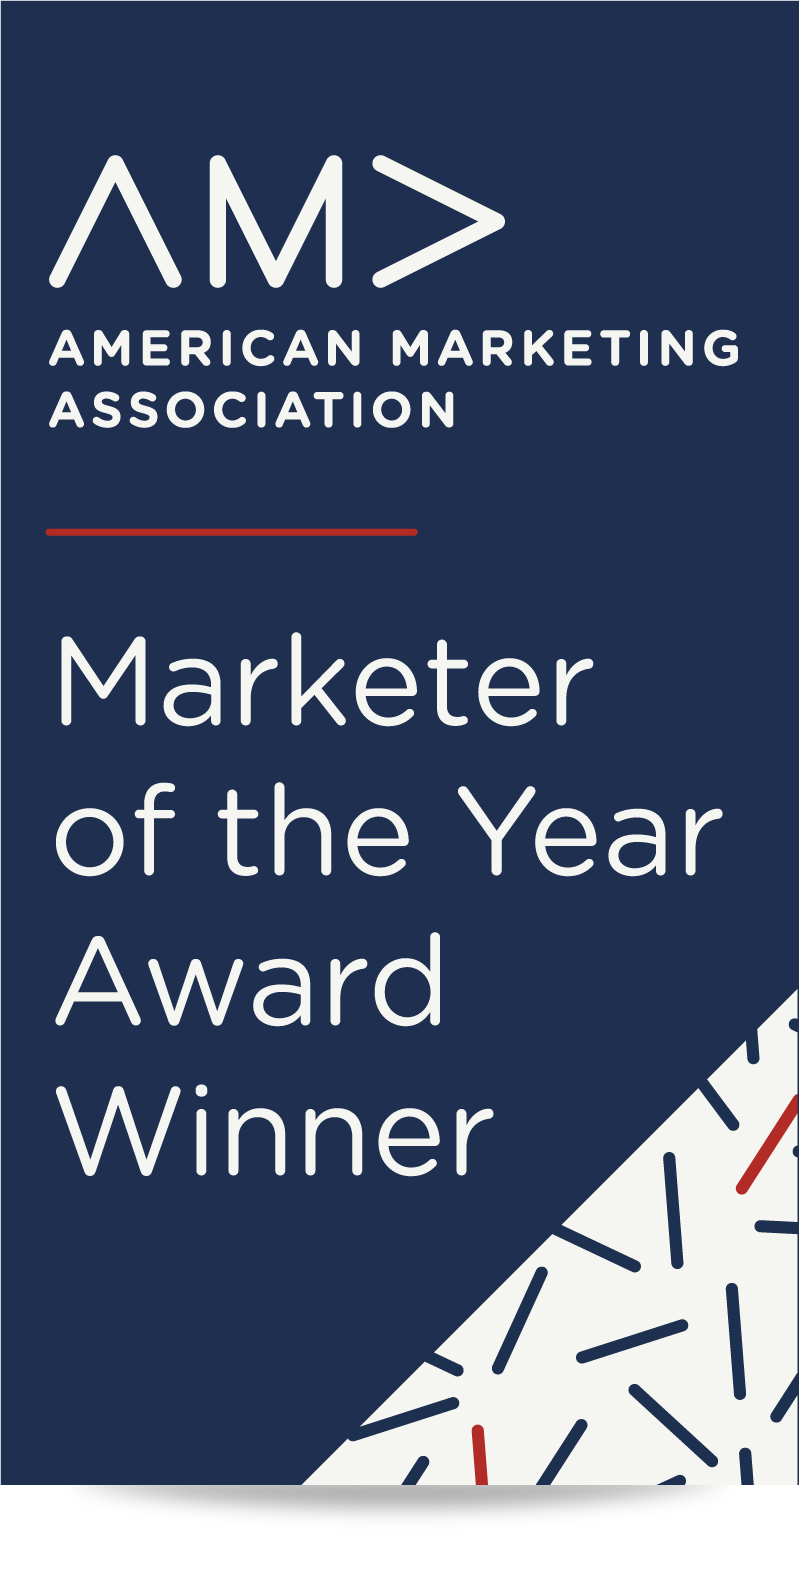 Dallas-Fort Worth American Marketing Association Marketer of the Year Award Winner Badge